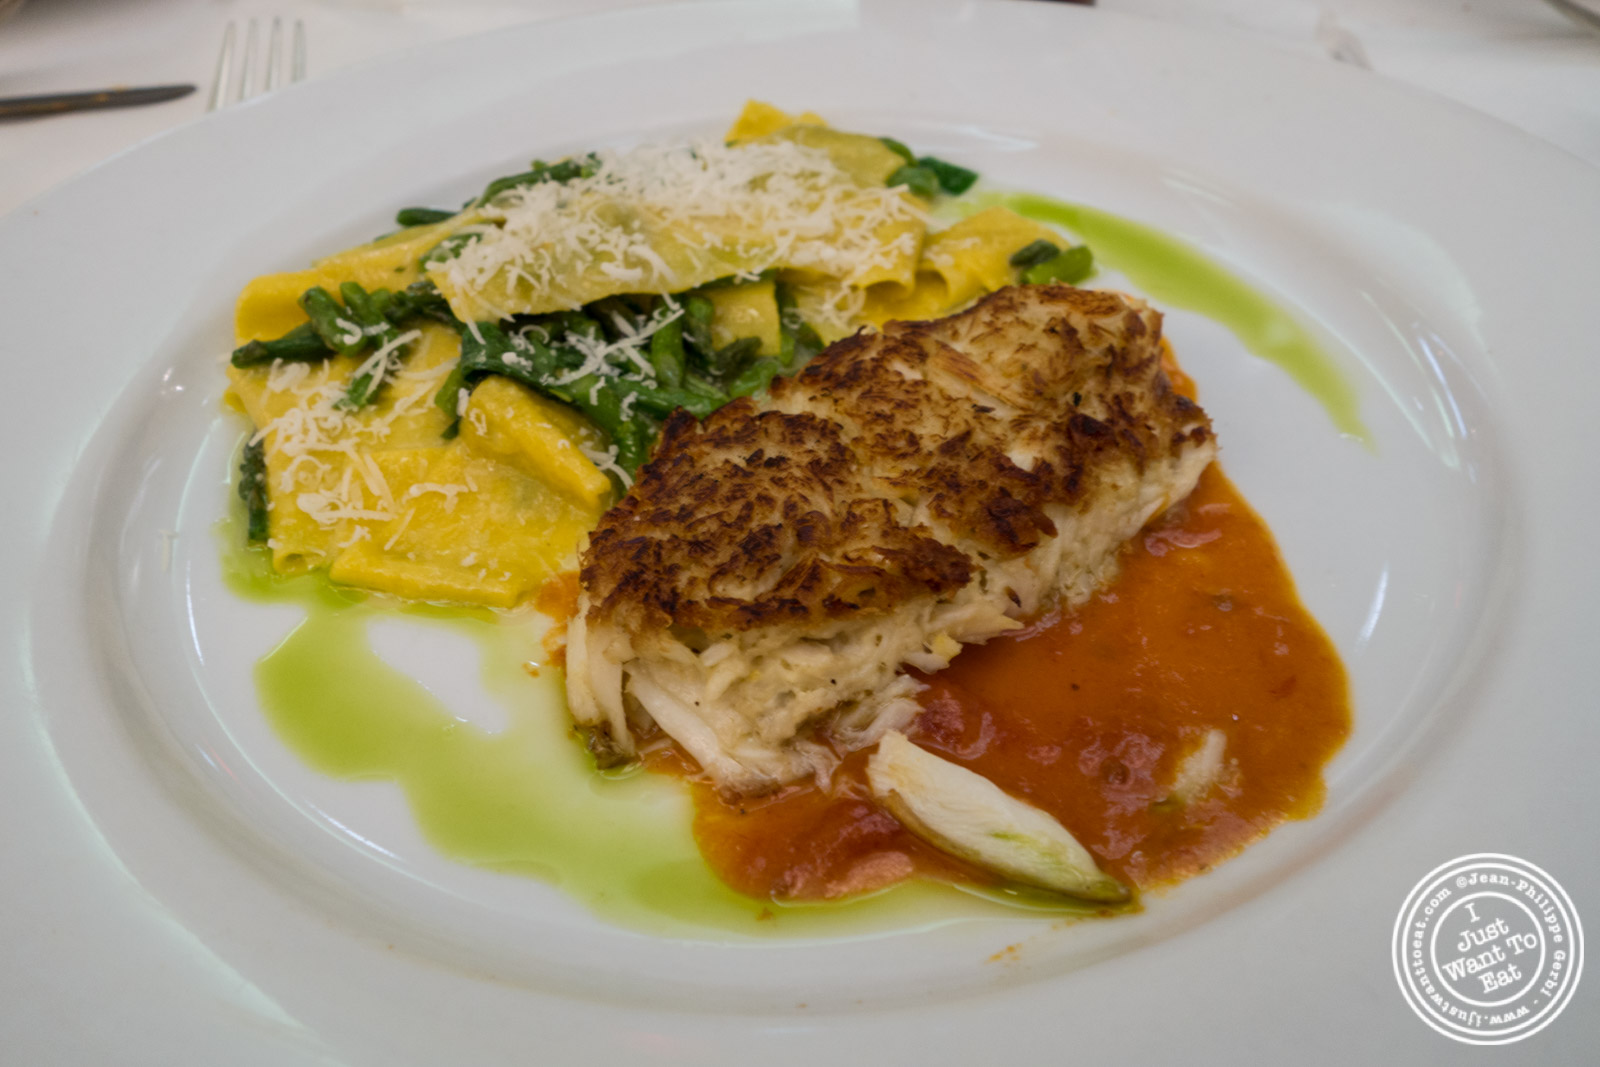 Trattoria Dell'arte Nyc Reviews Trattoria Dell Arte In New York Ny I Just Want To Eat Food